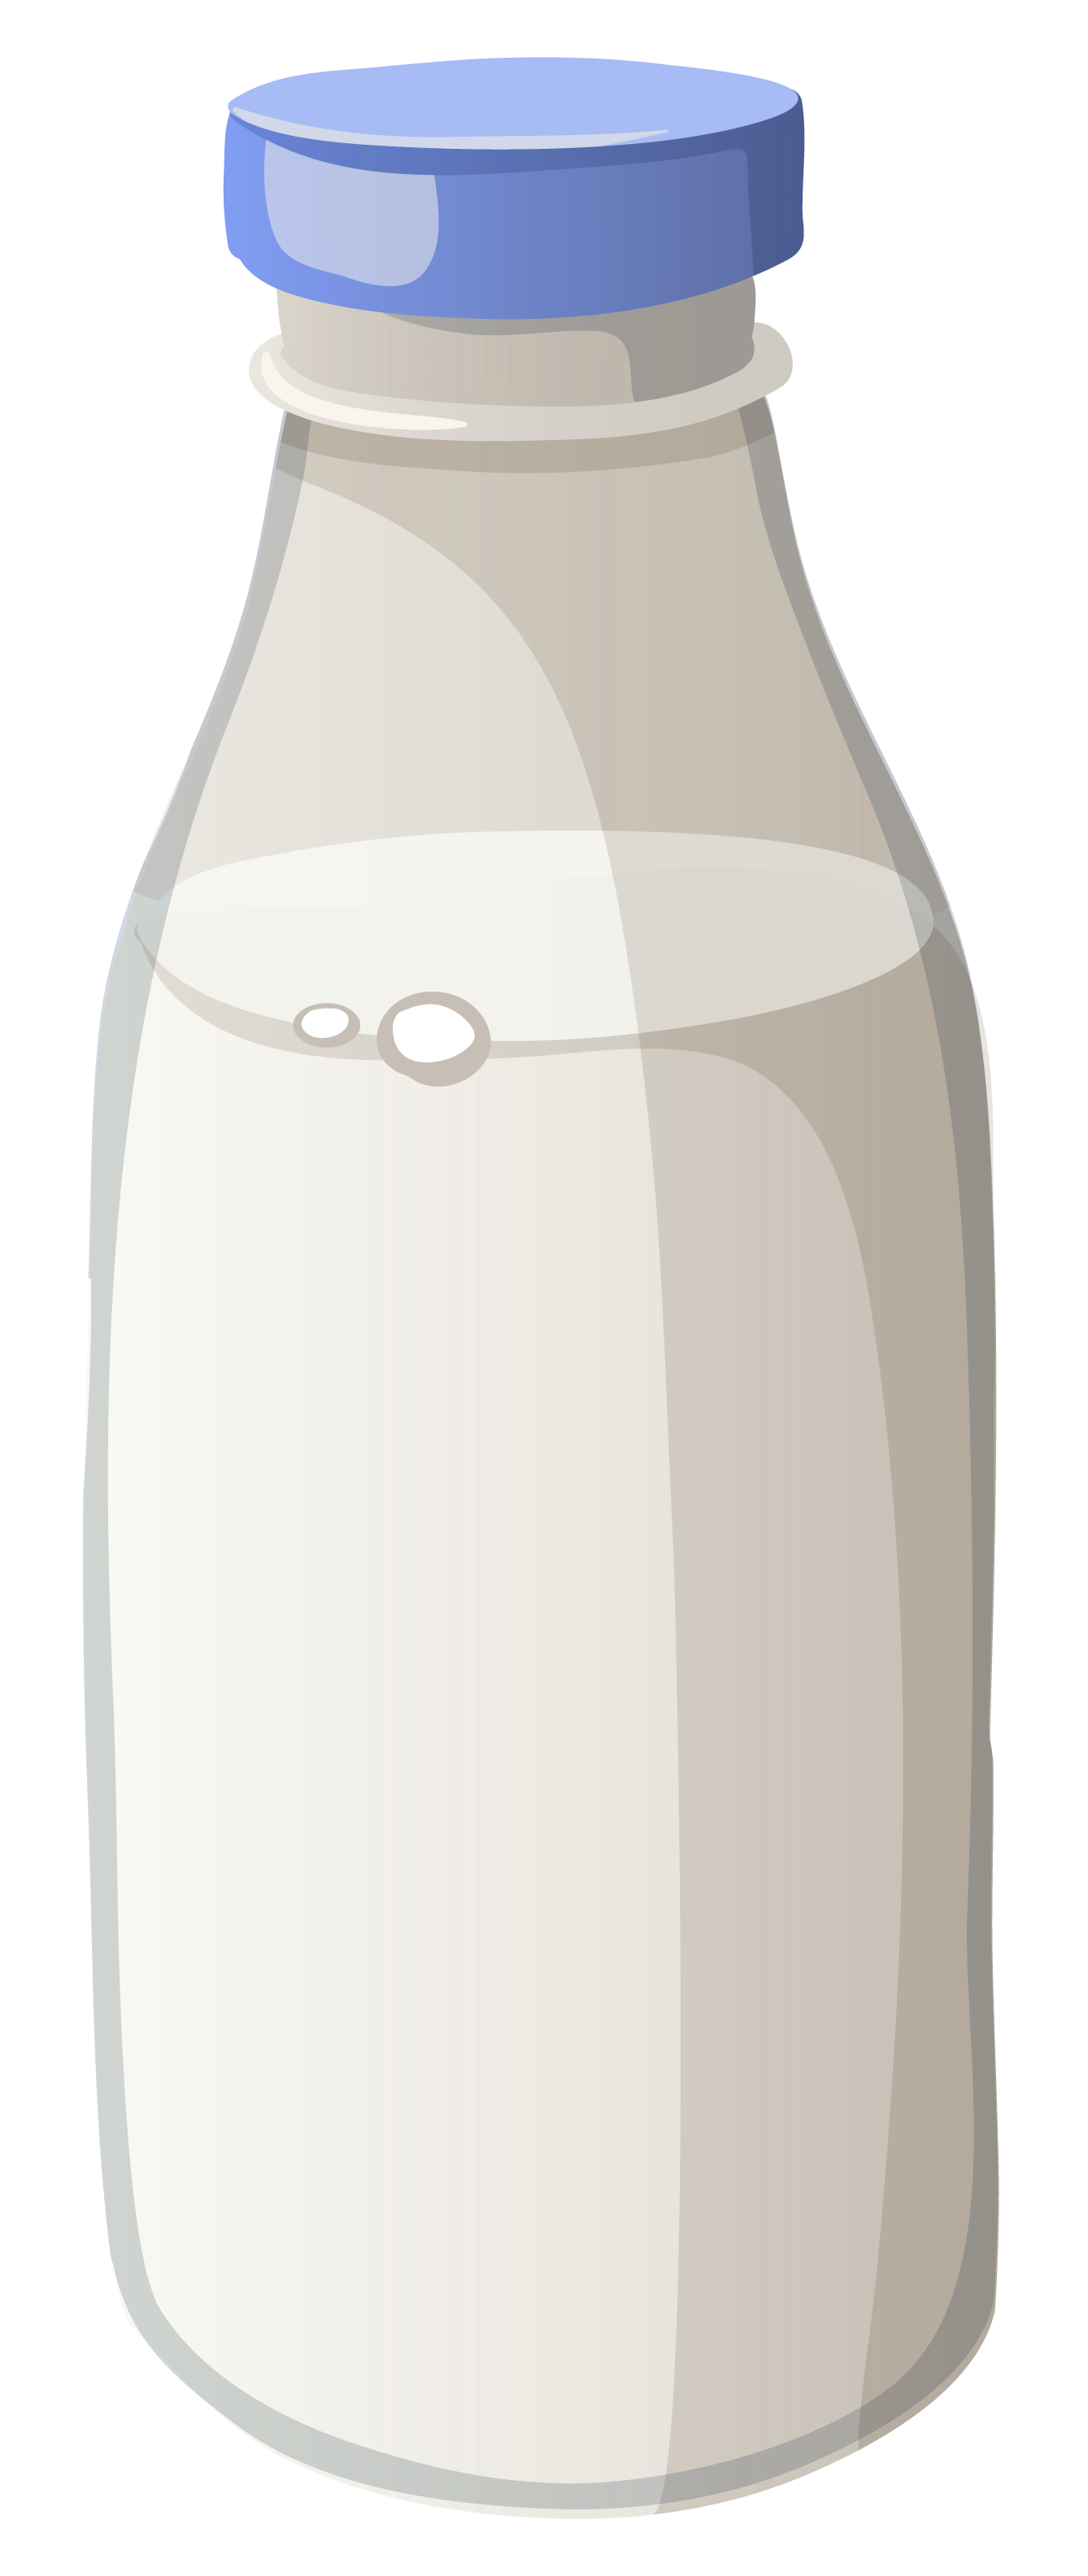 Bottle of Milk PNG Vector Clipart Image.